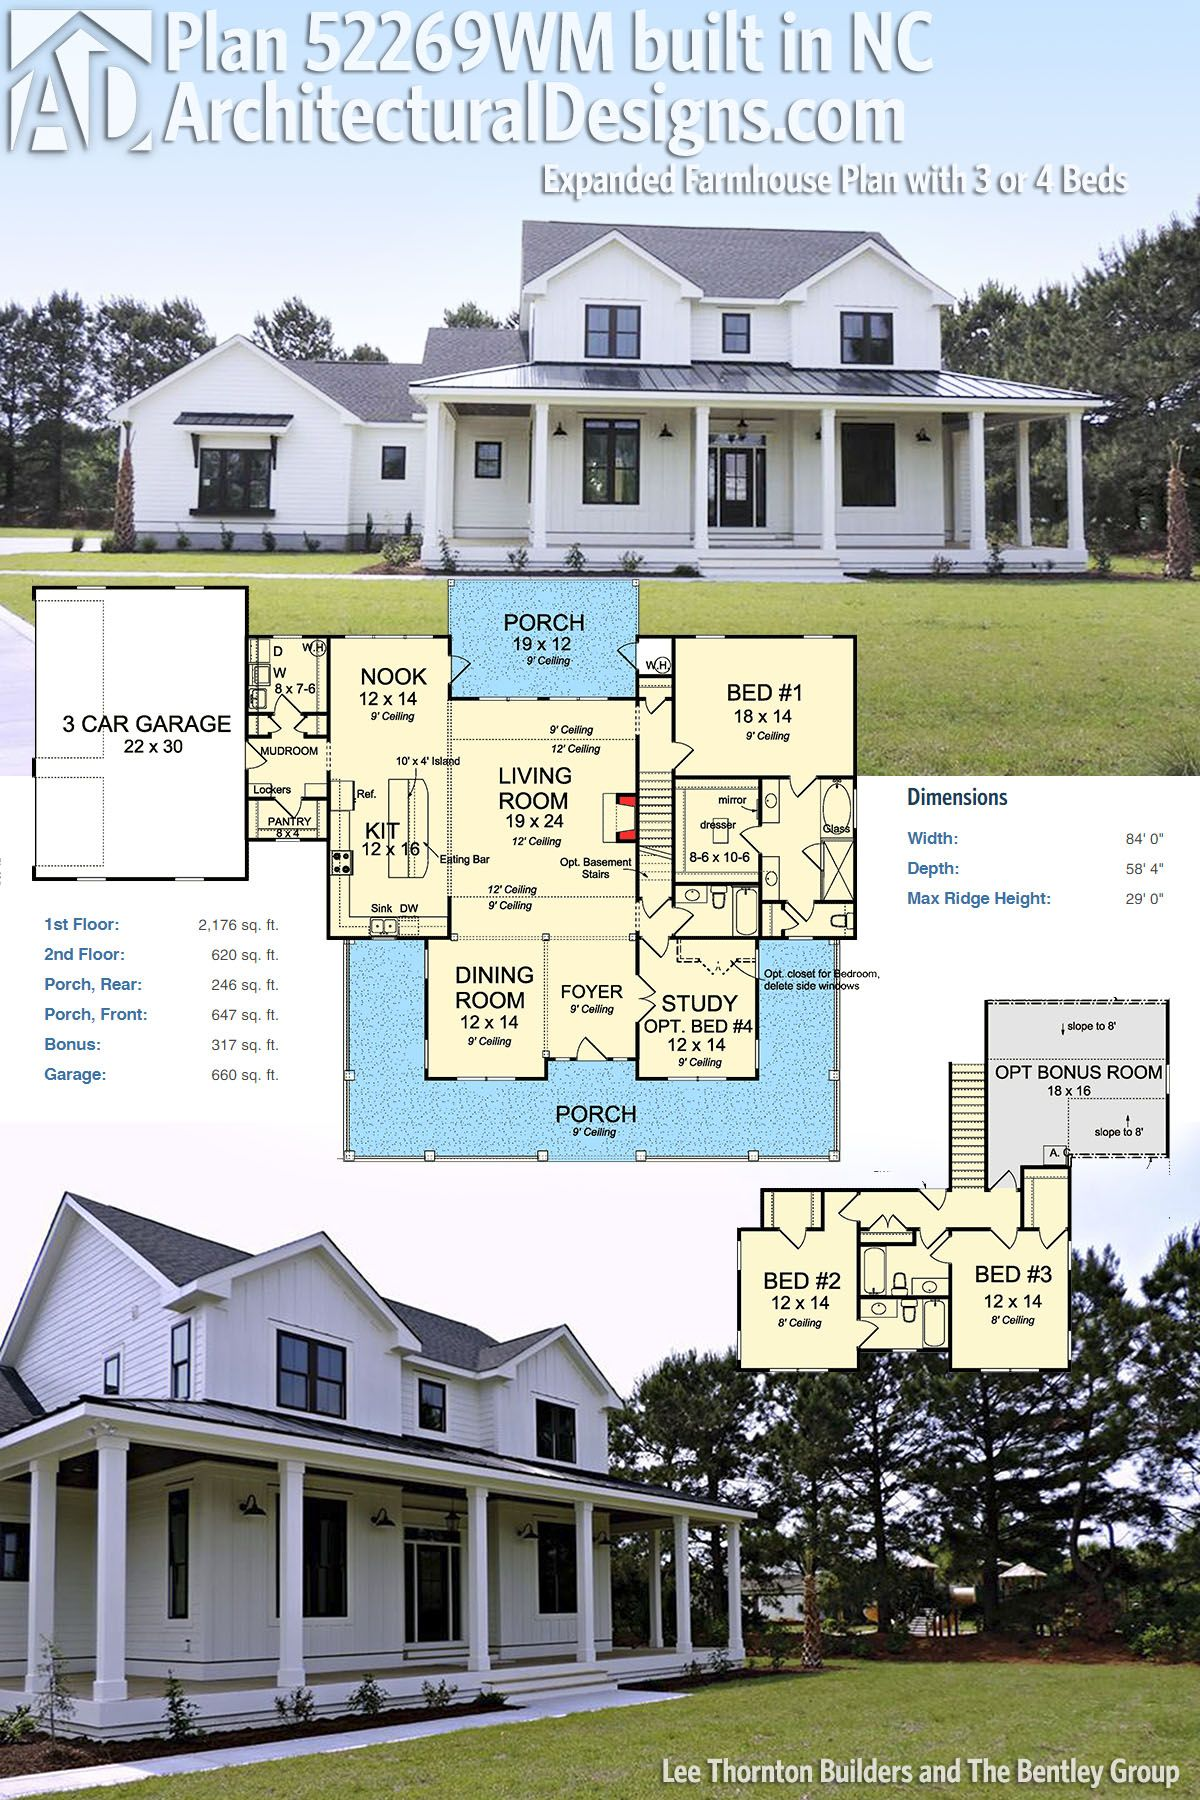 Architectural Designs Modern Farmhouse Plan Wm Was Stunningly Built In North Carolina By Our Client